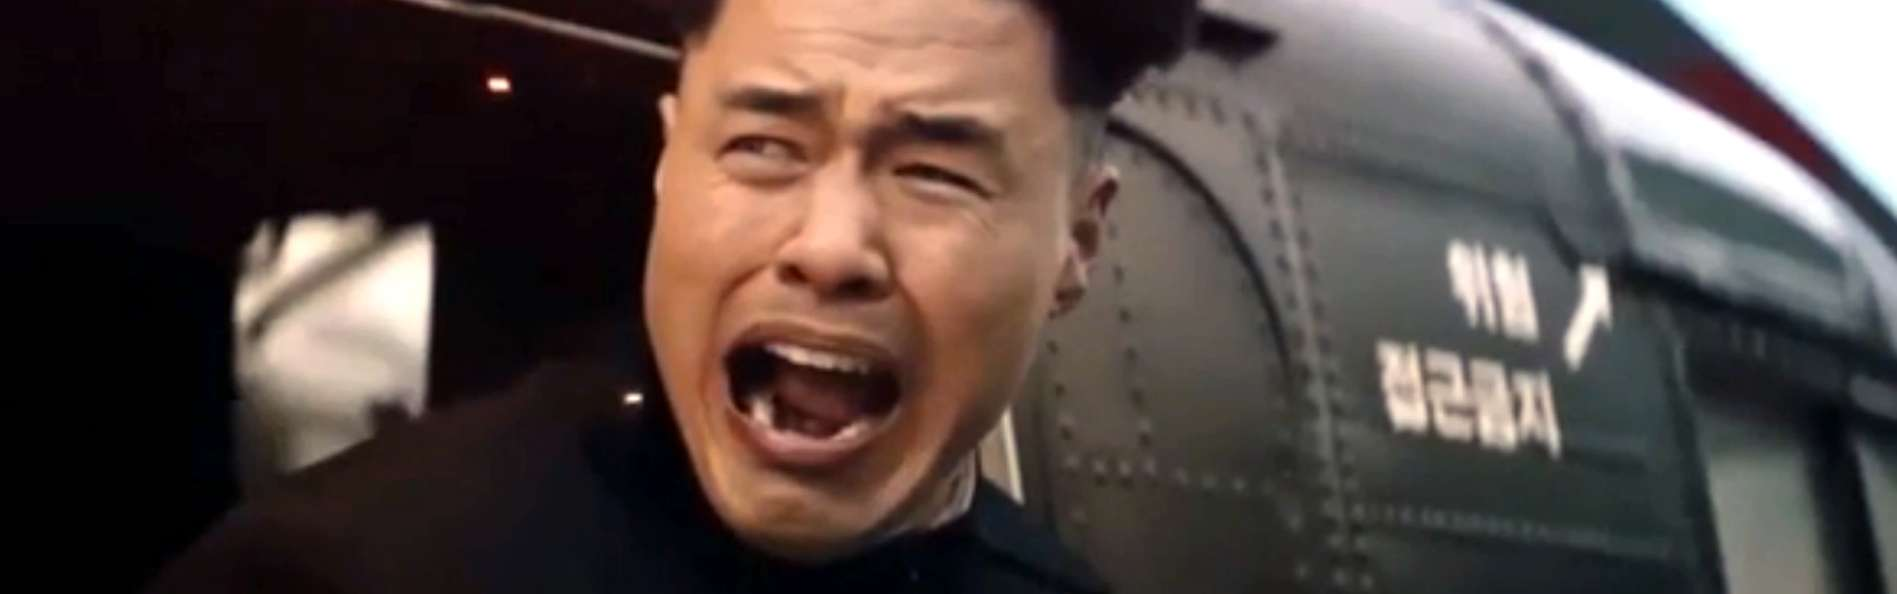 La muerte de Kim Jong-Un en 'The Interview'. Foto: Columbia Pictures